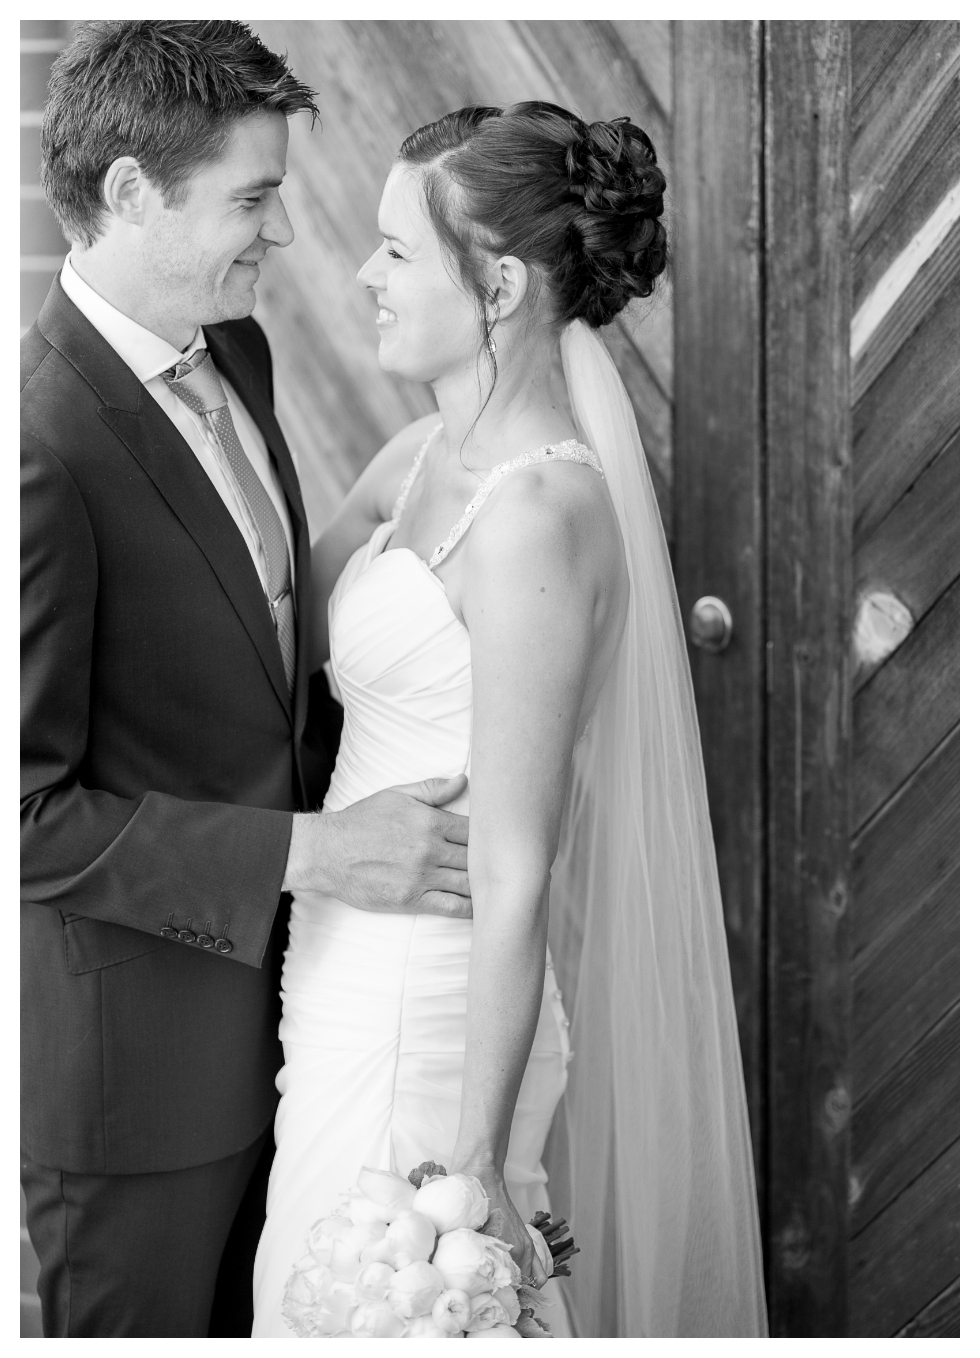 wedding photographer melbourne, wedding photographer mornington peninsula